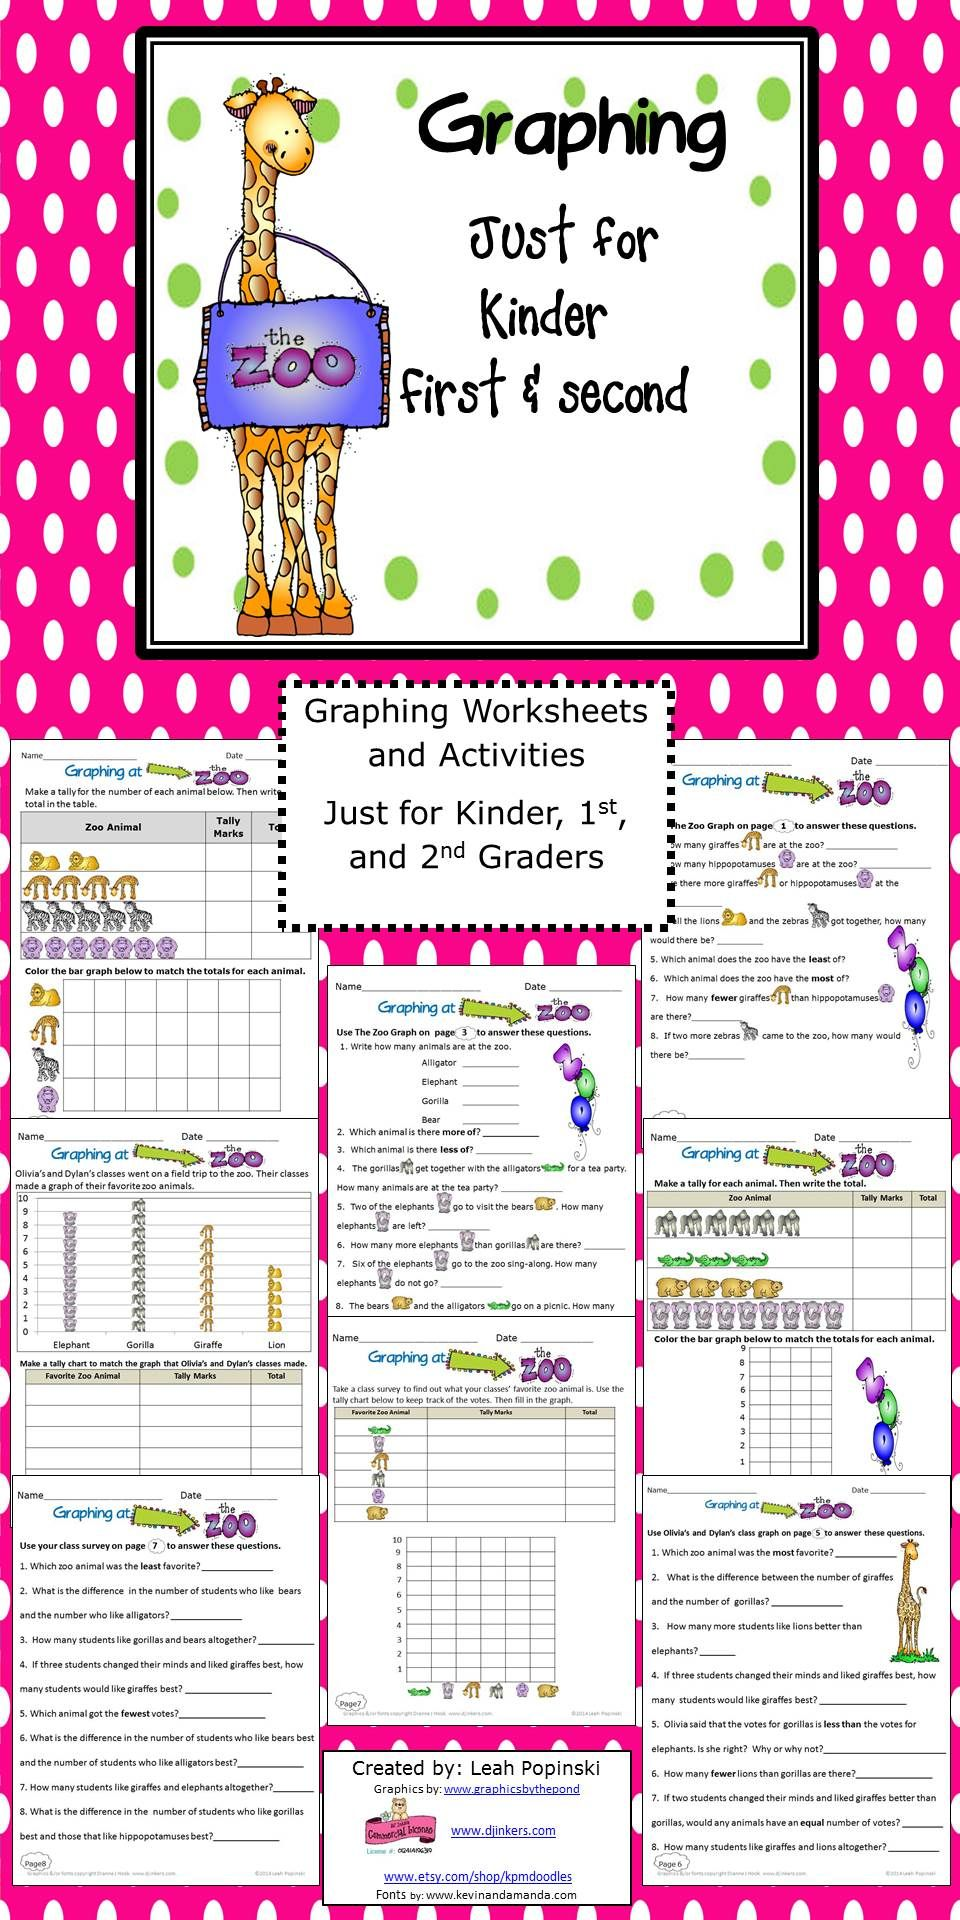 Activities And Worksheets To Strengthen And Practice Graphing Skills With A Fun Zoo Theme Adorable Graphics Education Math Graphing Activities Math Activities